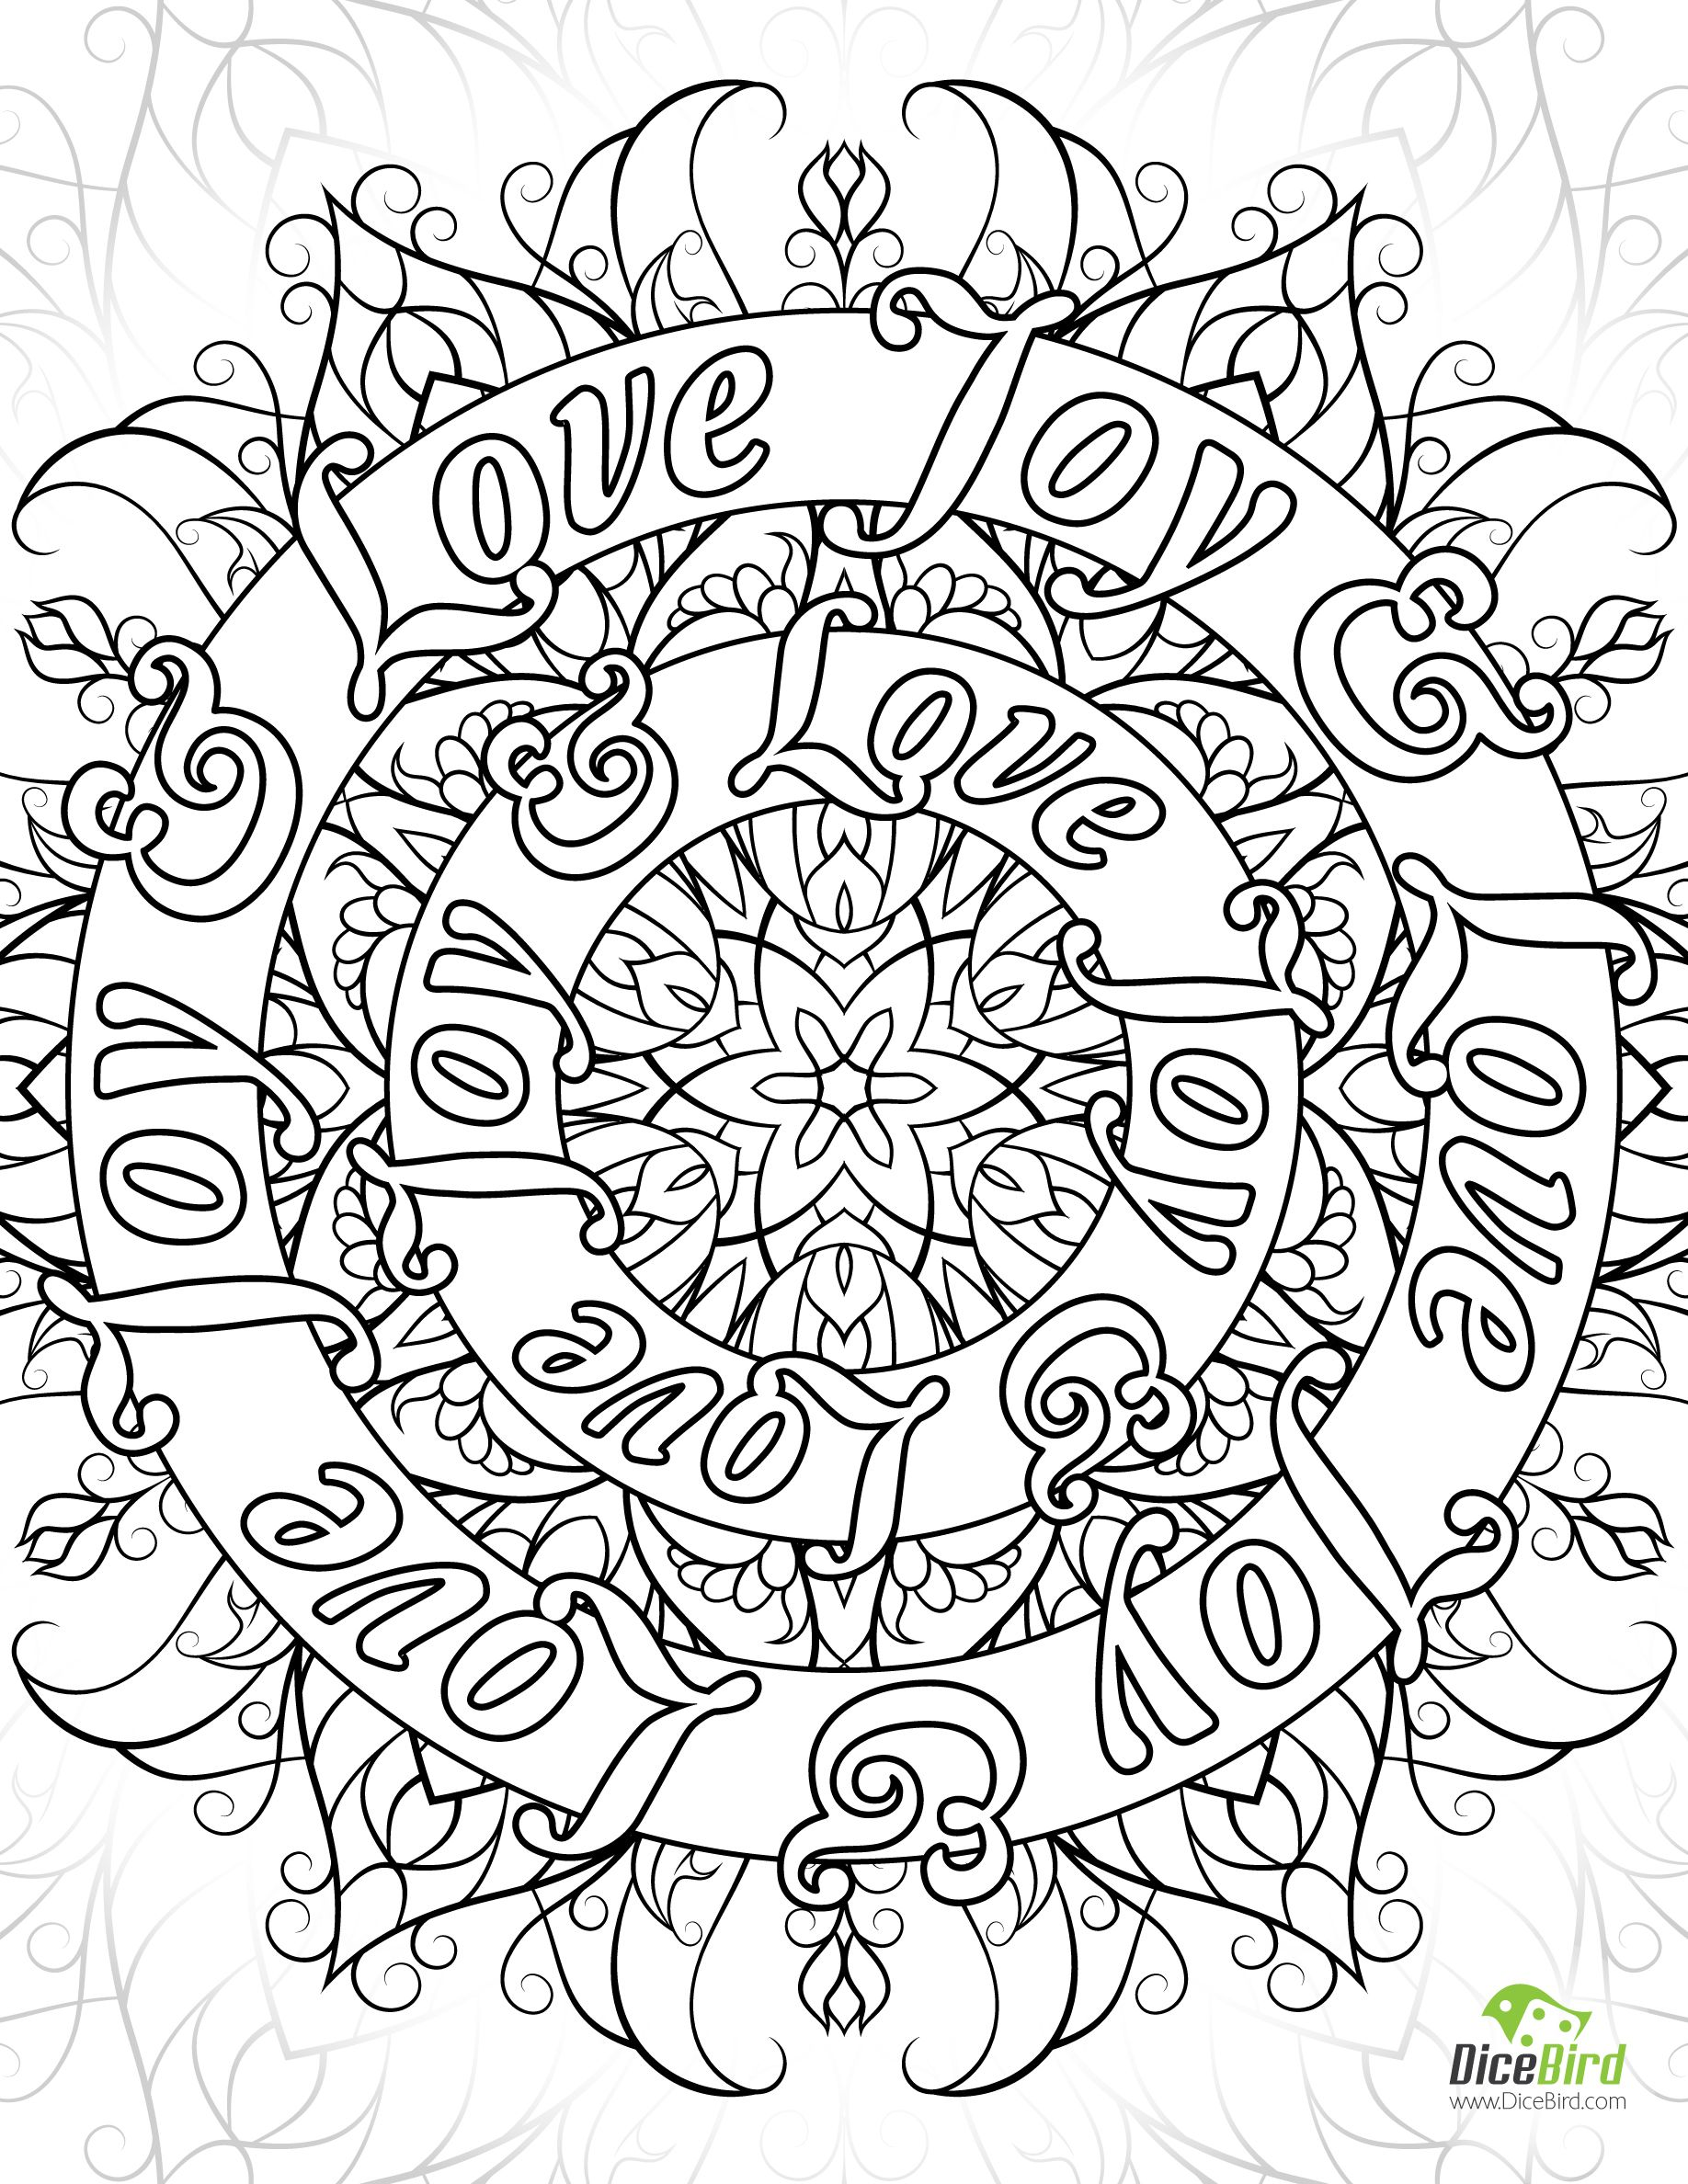 Peace Family Joy Love free adult coloring book pages to